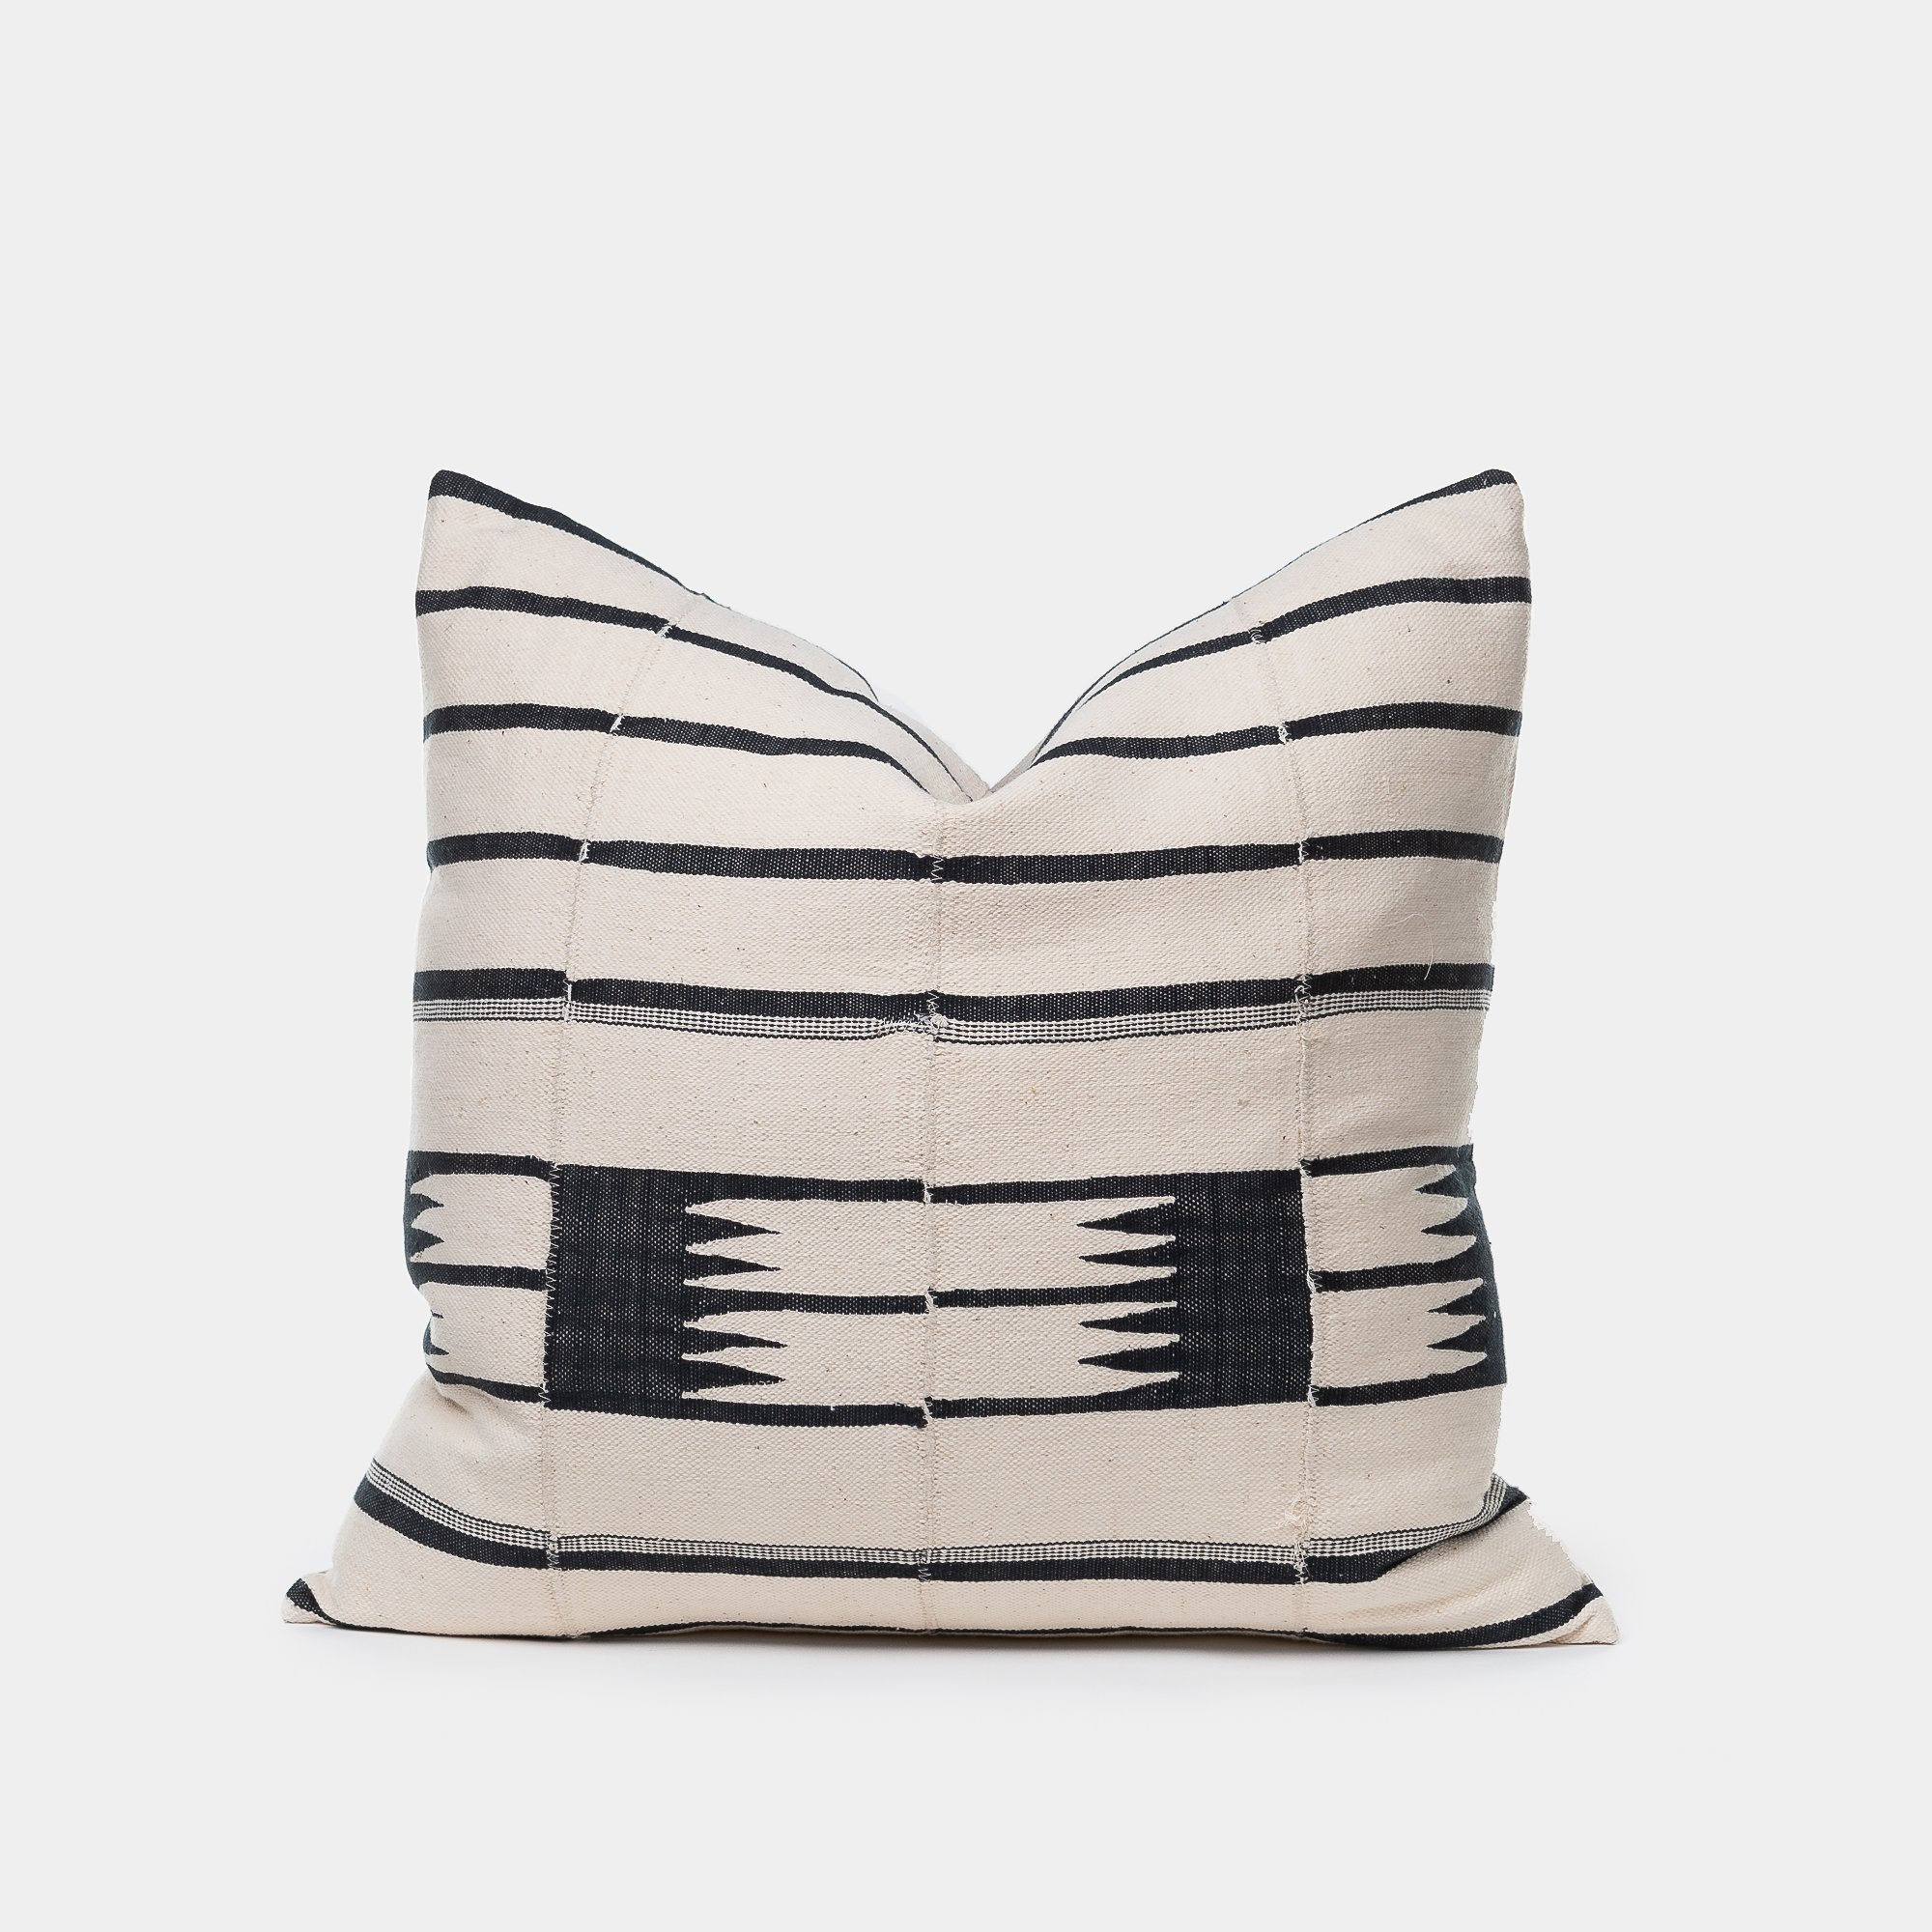 ALL-SORTS-OF-SHOPPE-HASSA-PILLOW